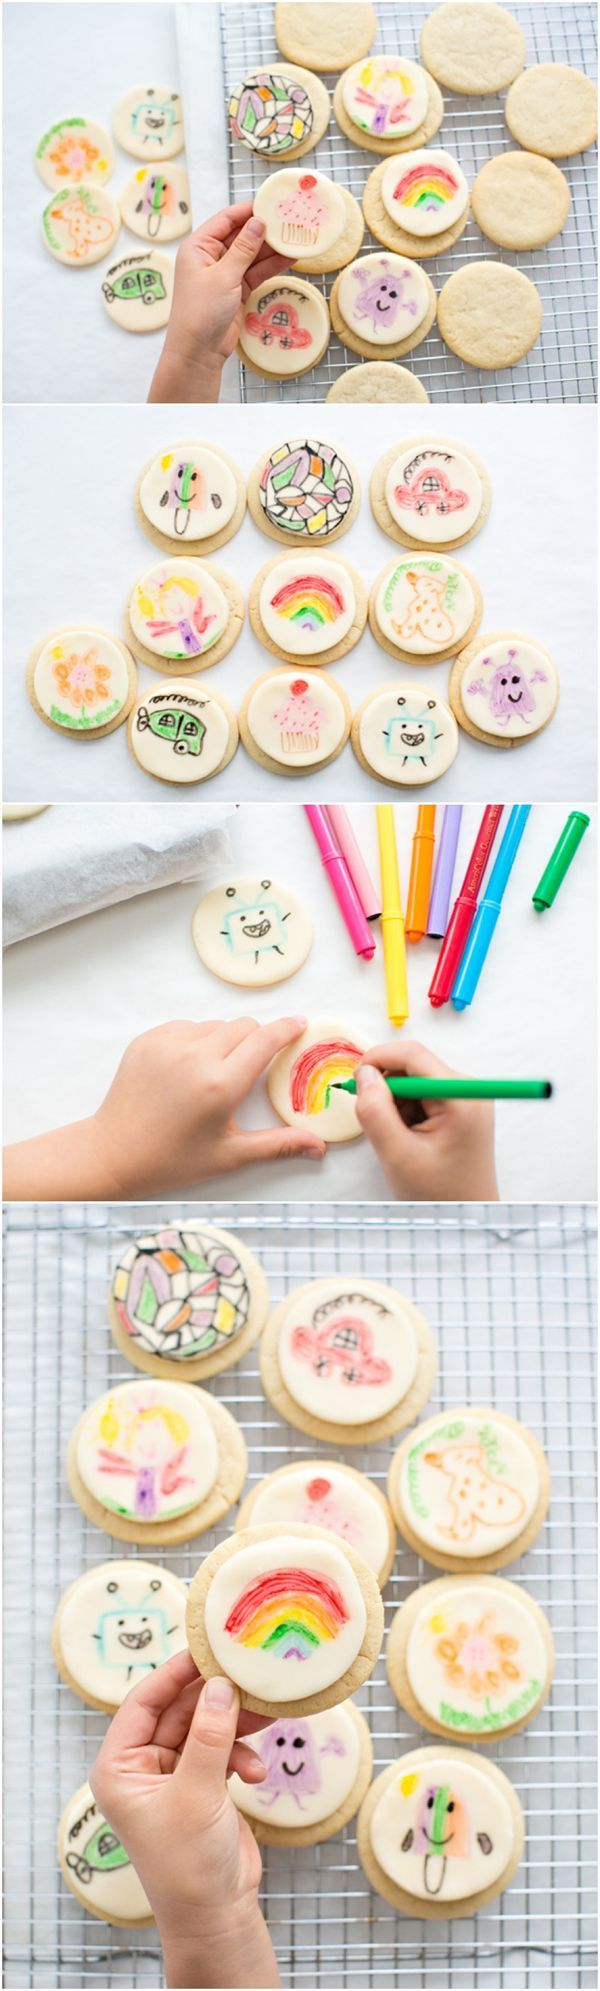 Show off your kids art on fondant cookies! These would be fun to set out for a birthday party for kids to decorate and take home as favors!